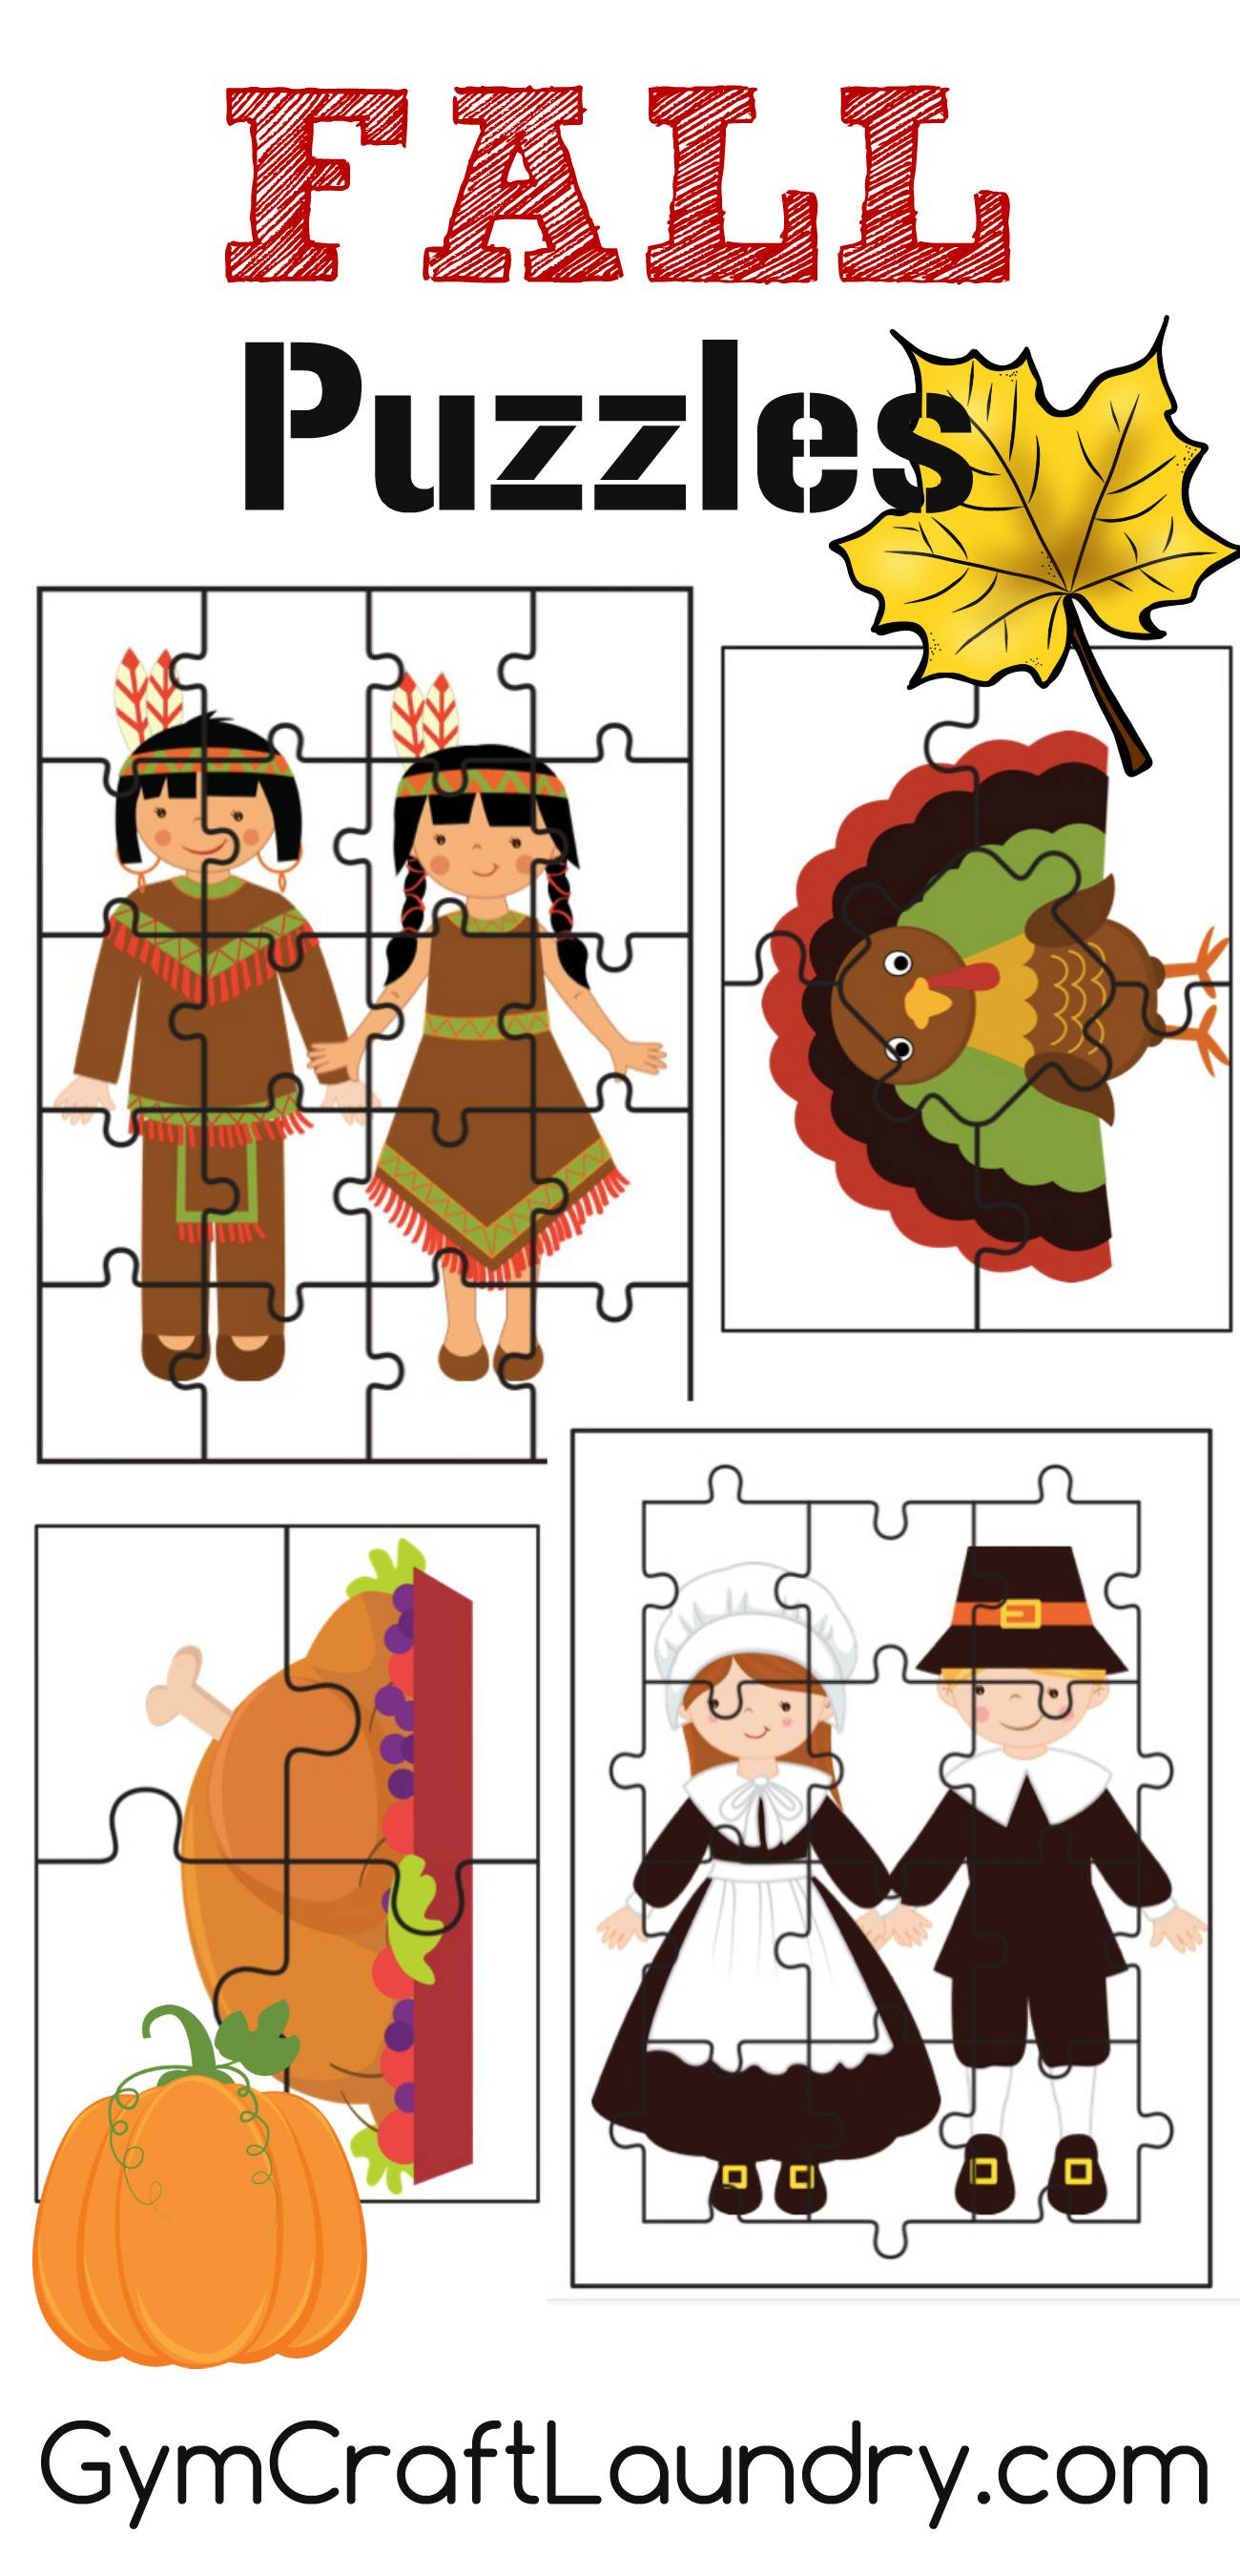 10 Sources For Fun Amp Free Thanksgiving Printables For Kids